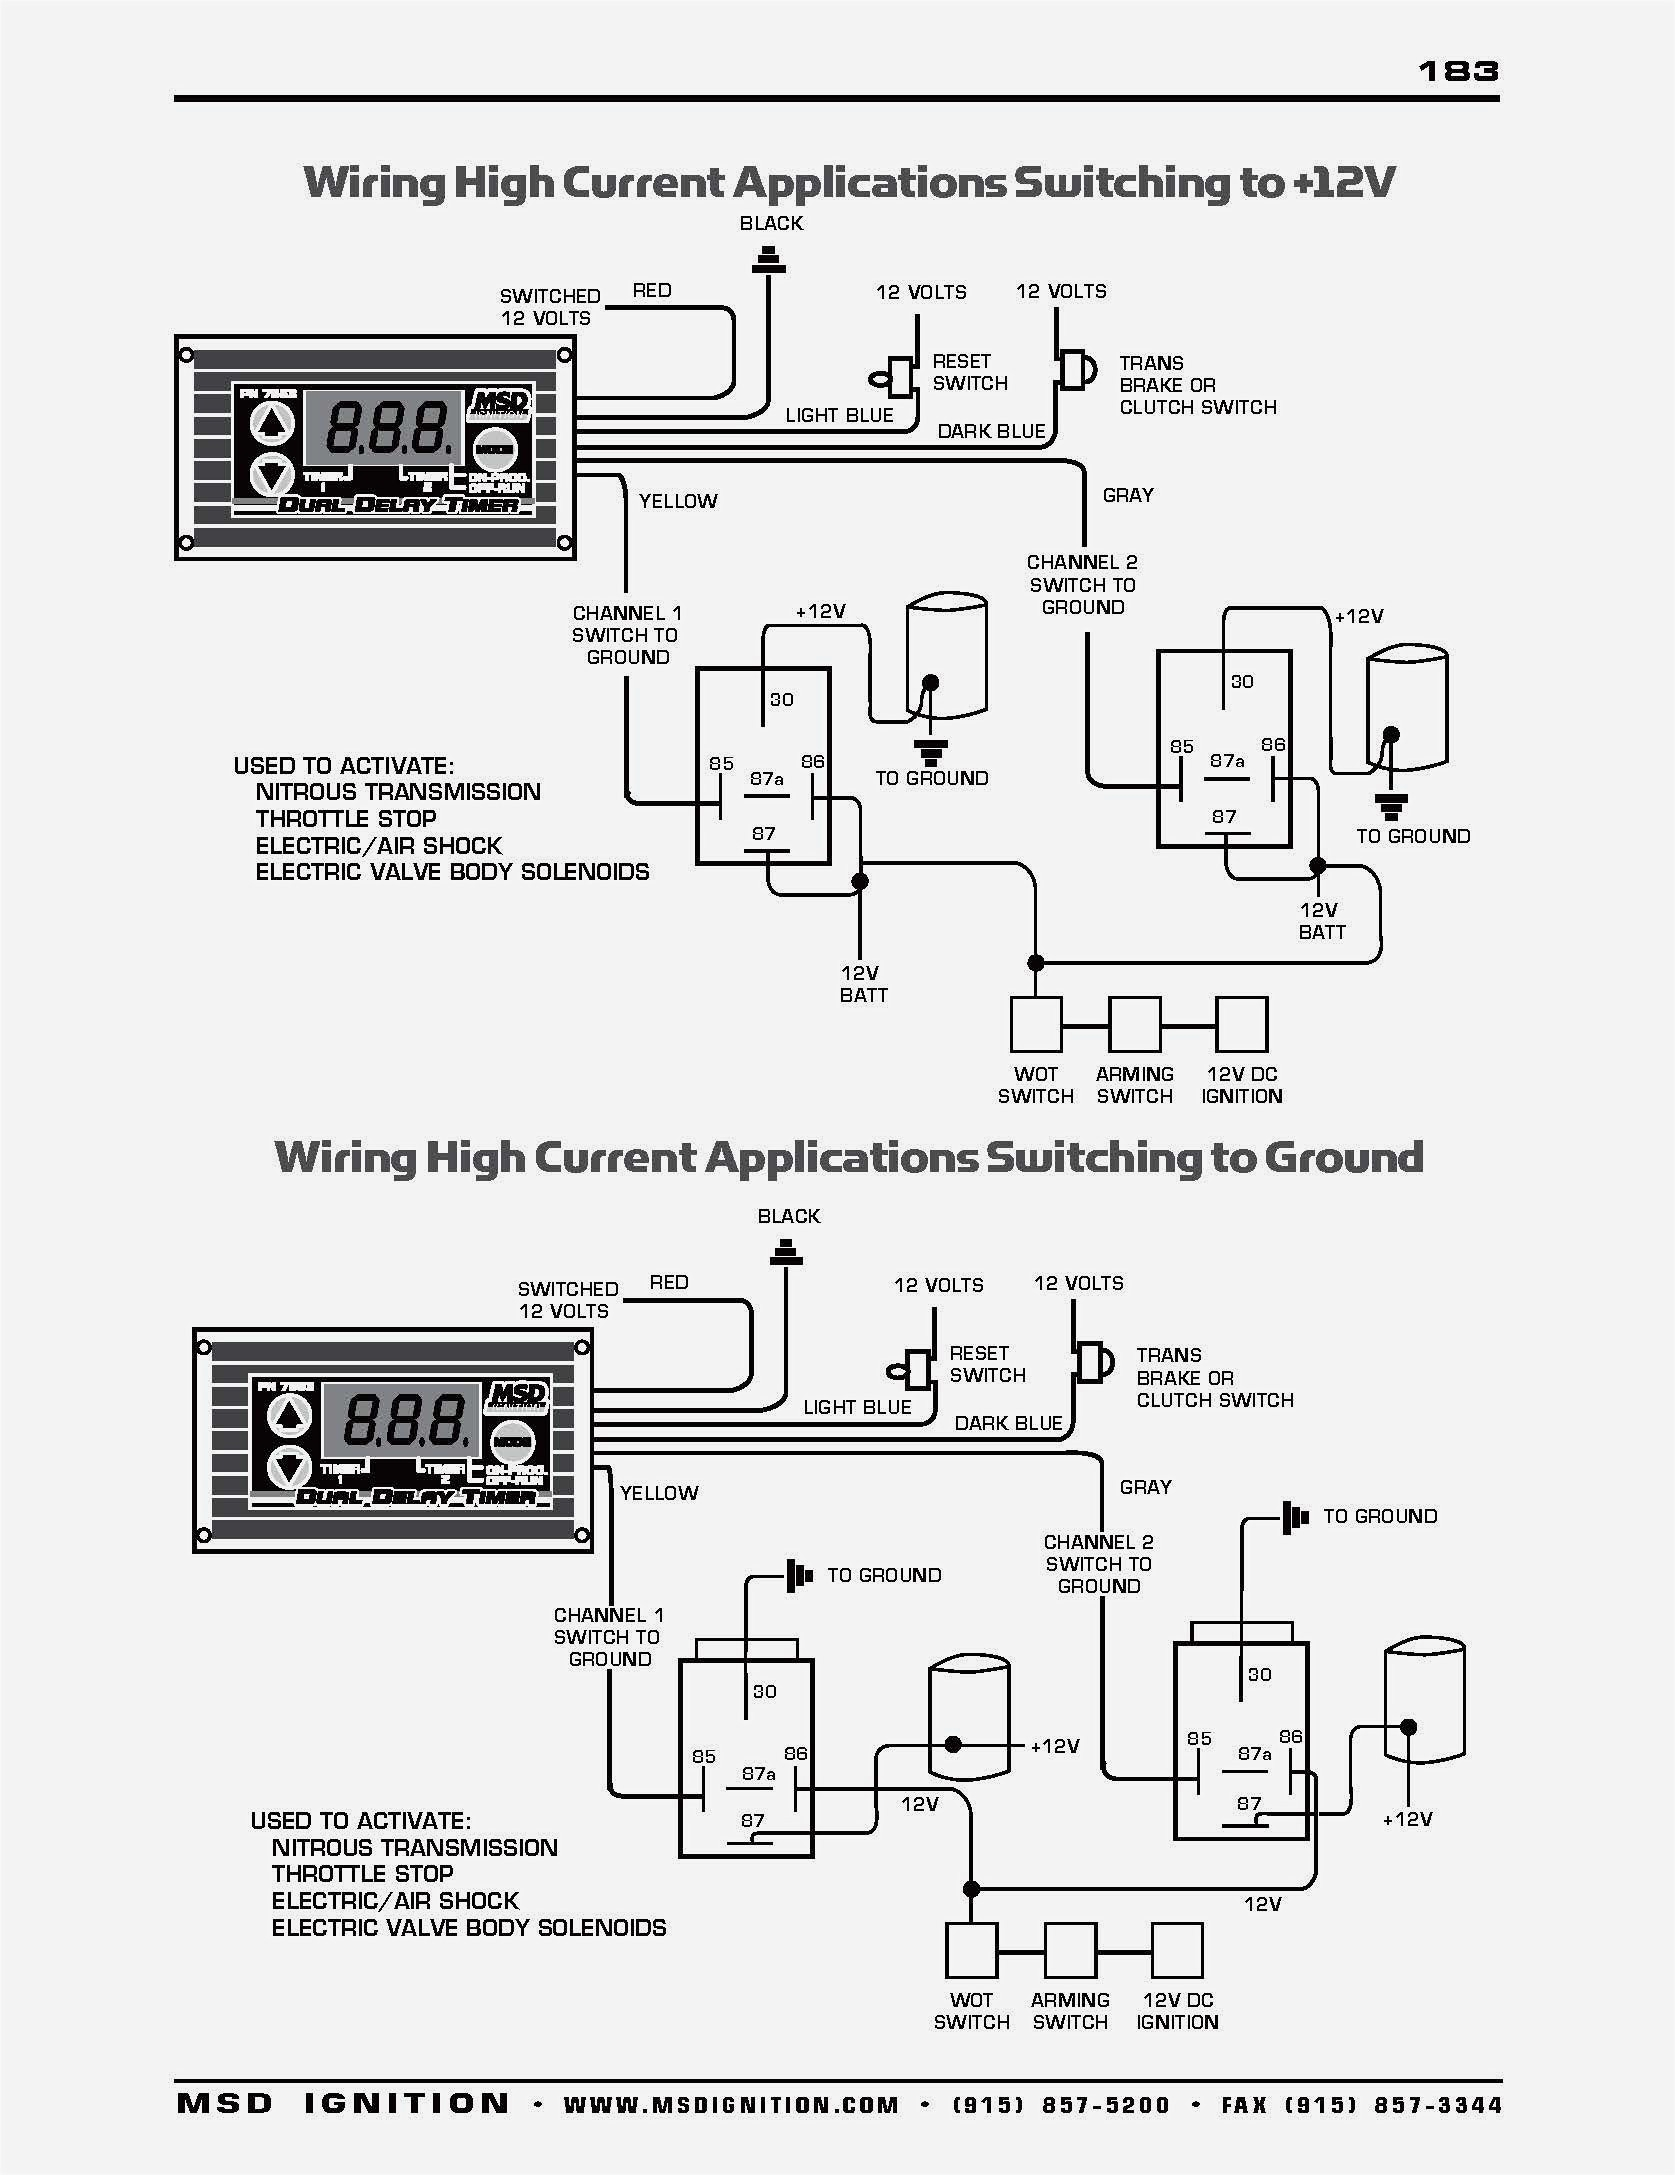 6al Wiring Diagram